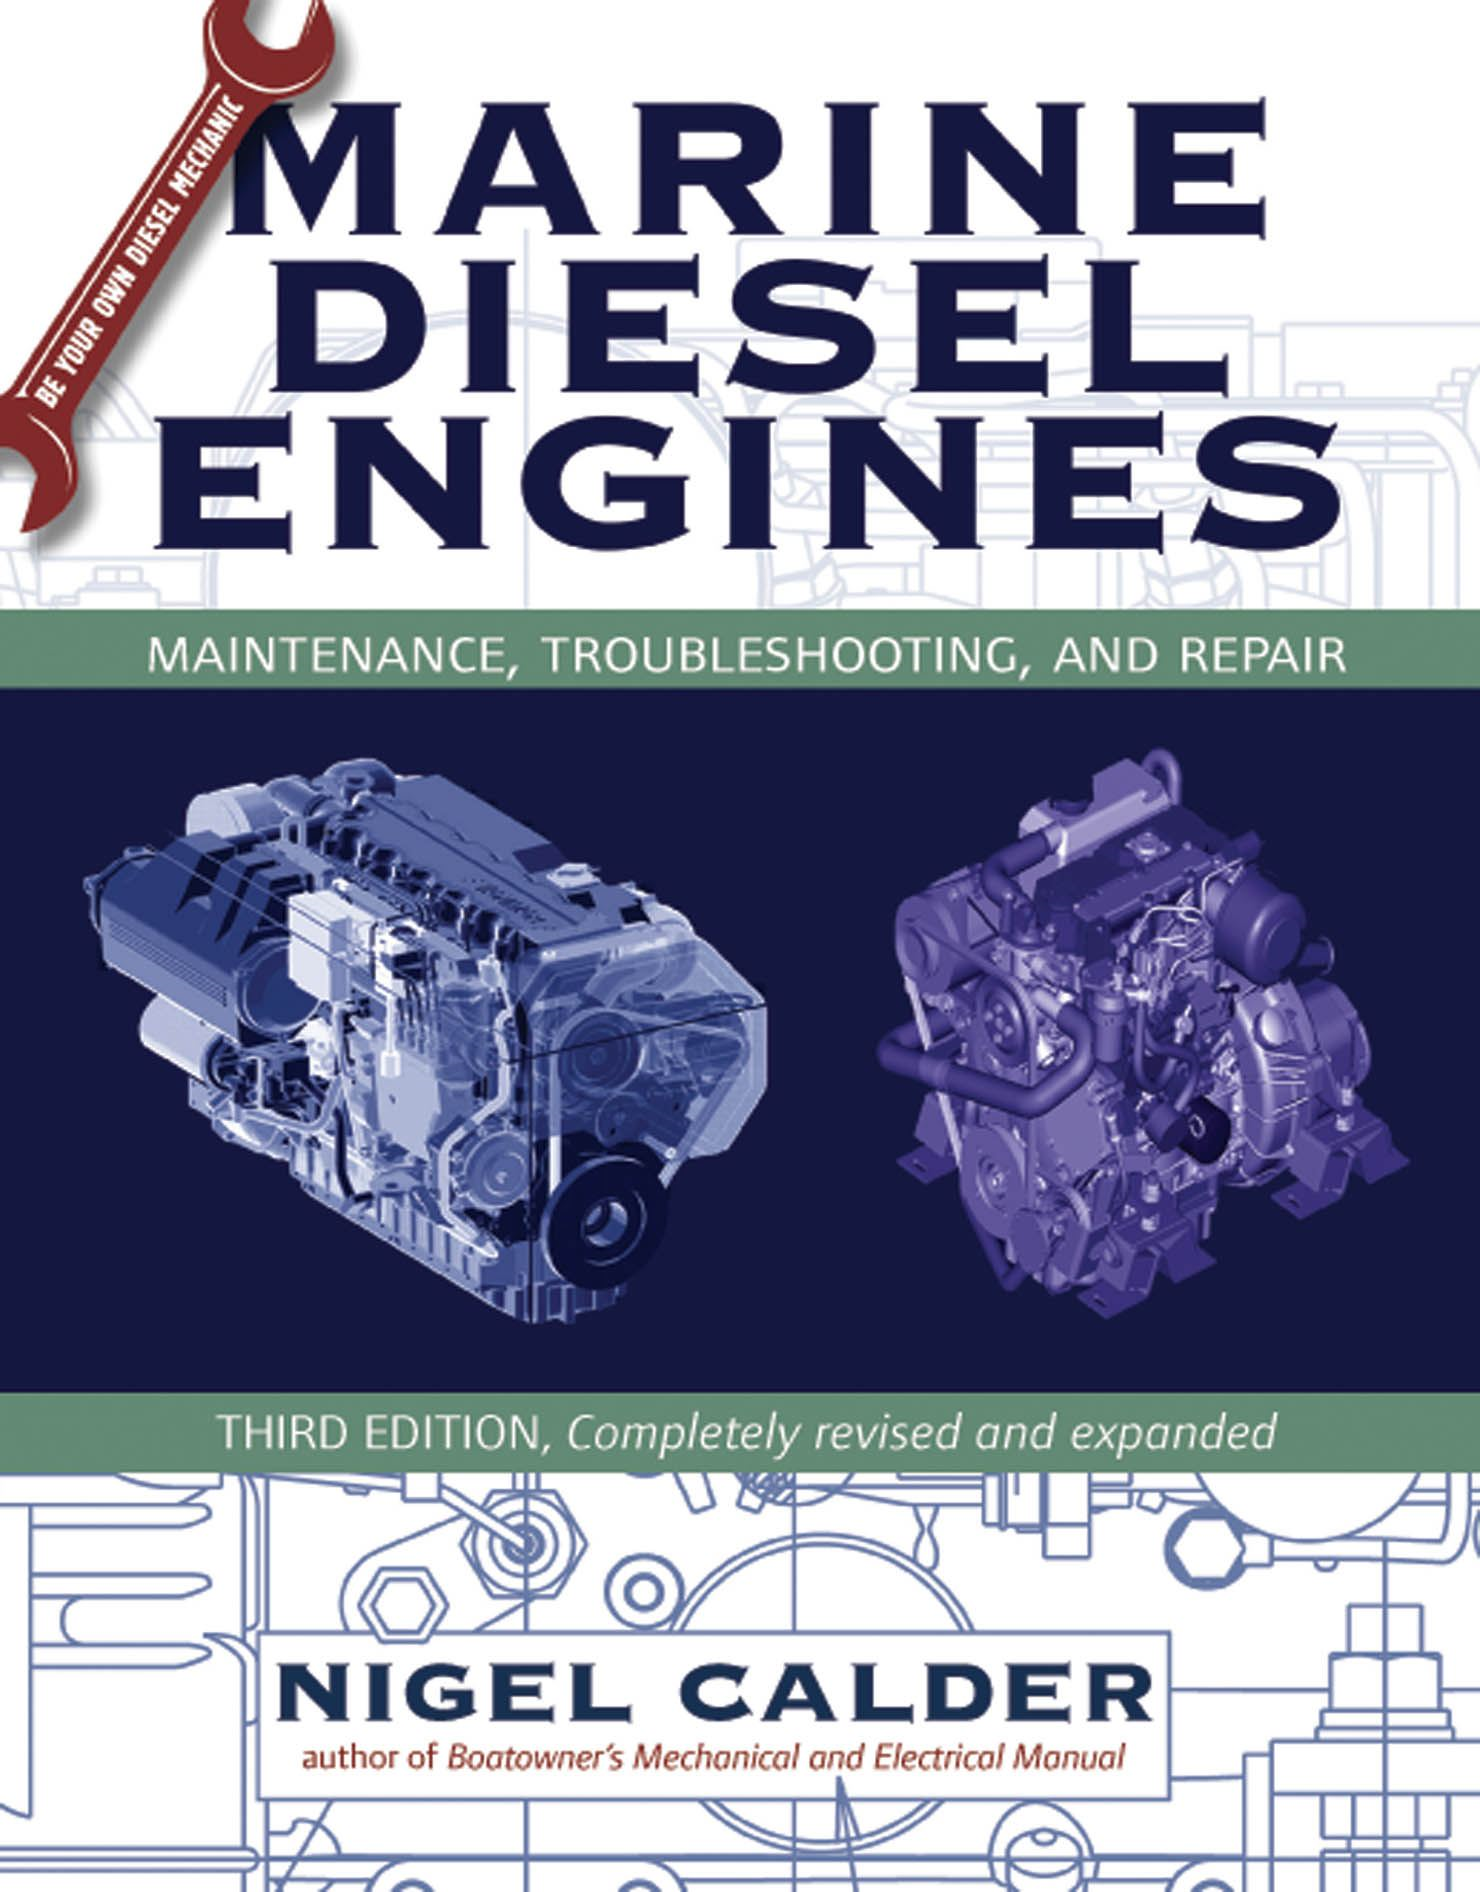 Marine Diesel Engines : Maintenance Troubleshooting and Repair